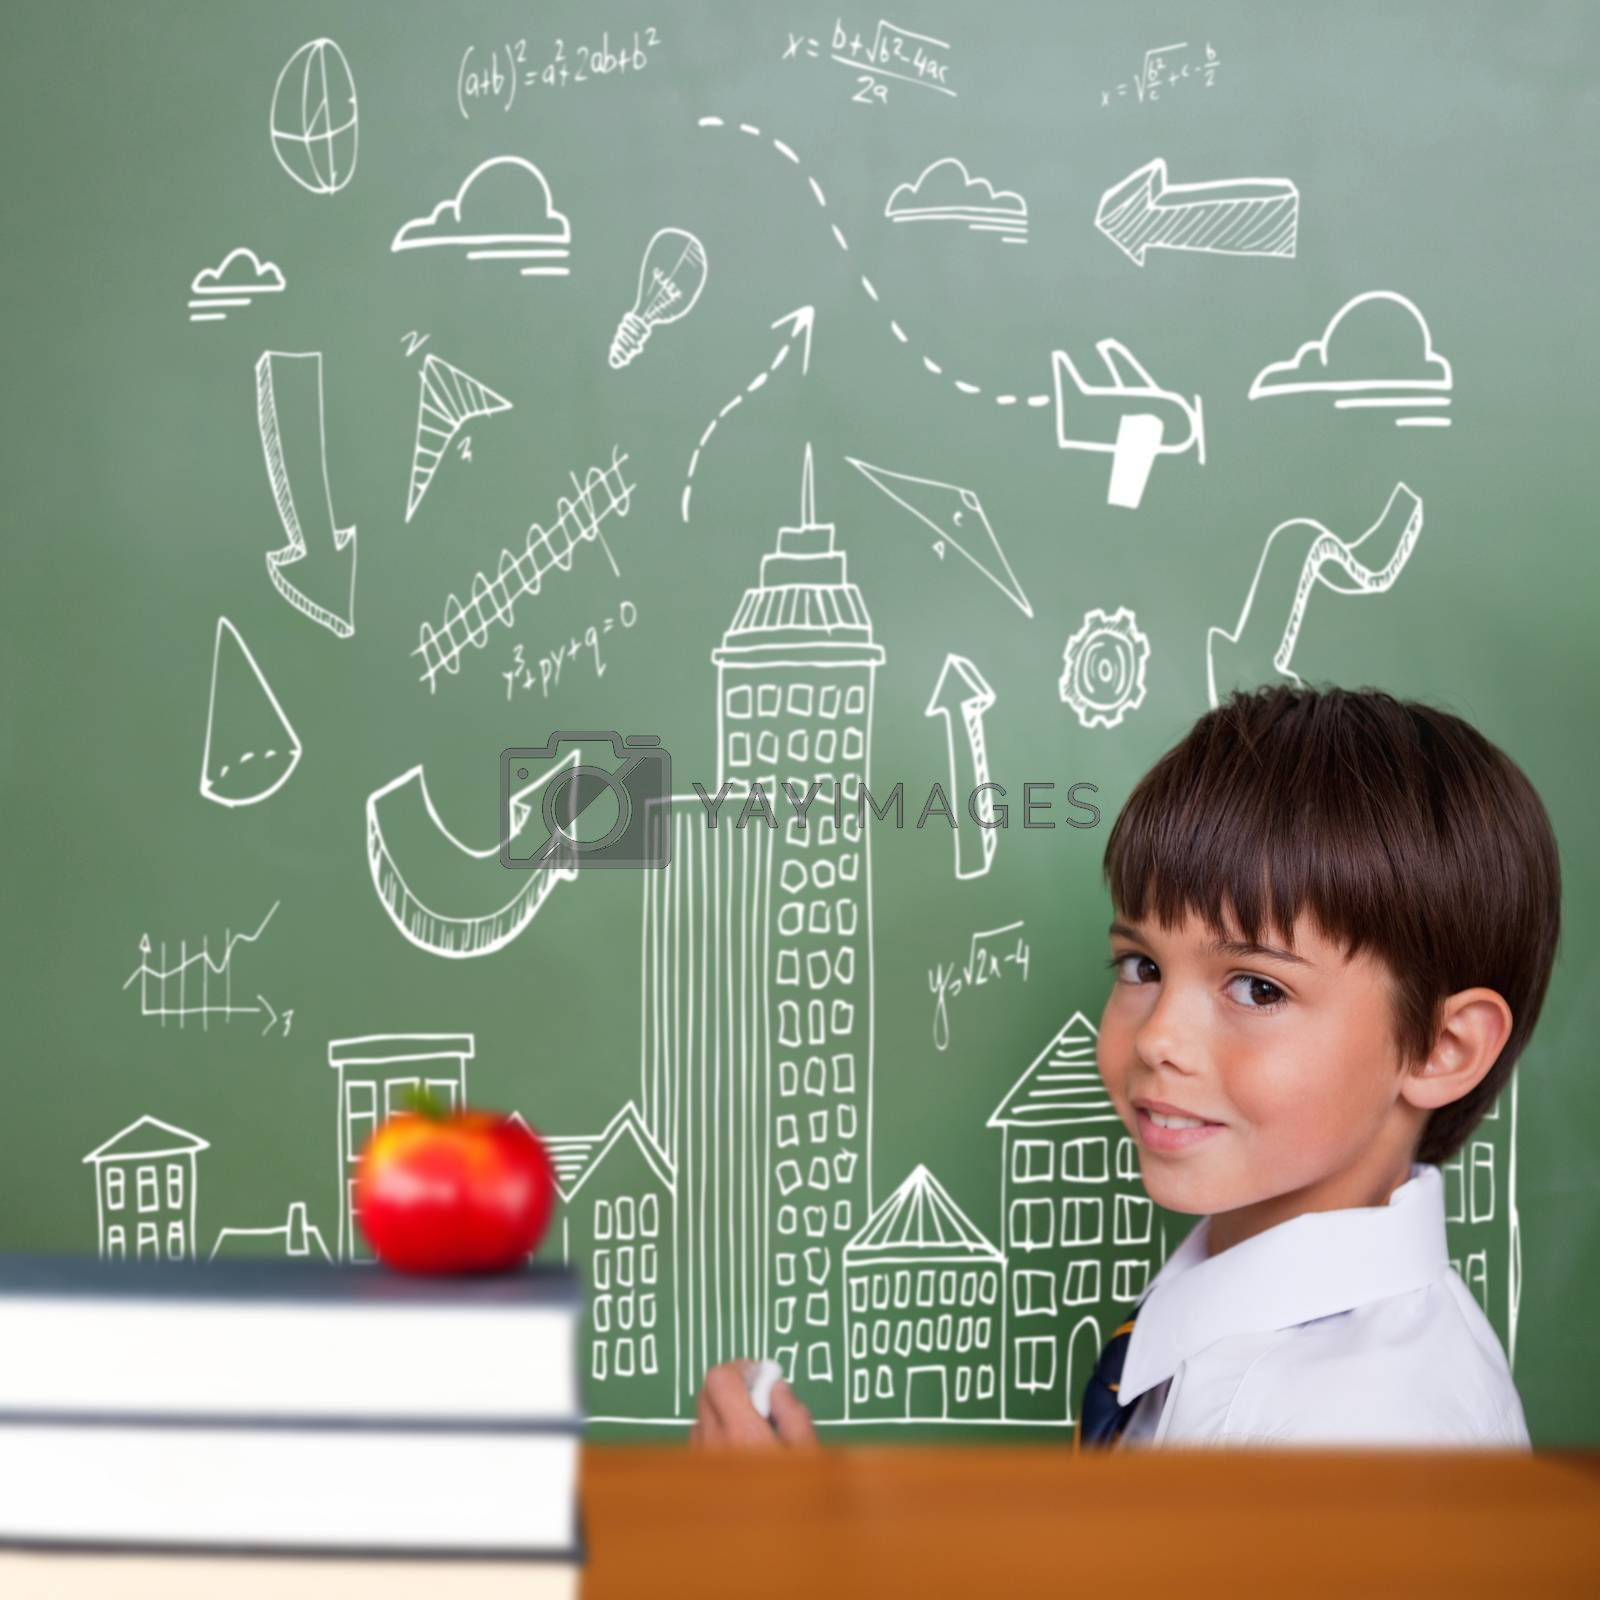 Red apple on pile of books against cute pupil holding chalk